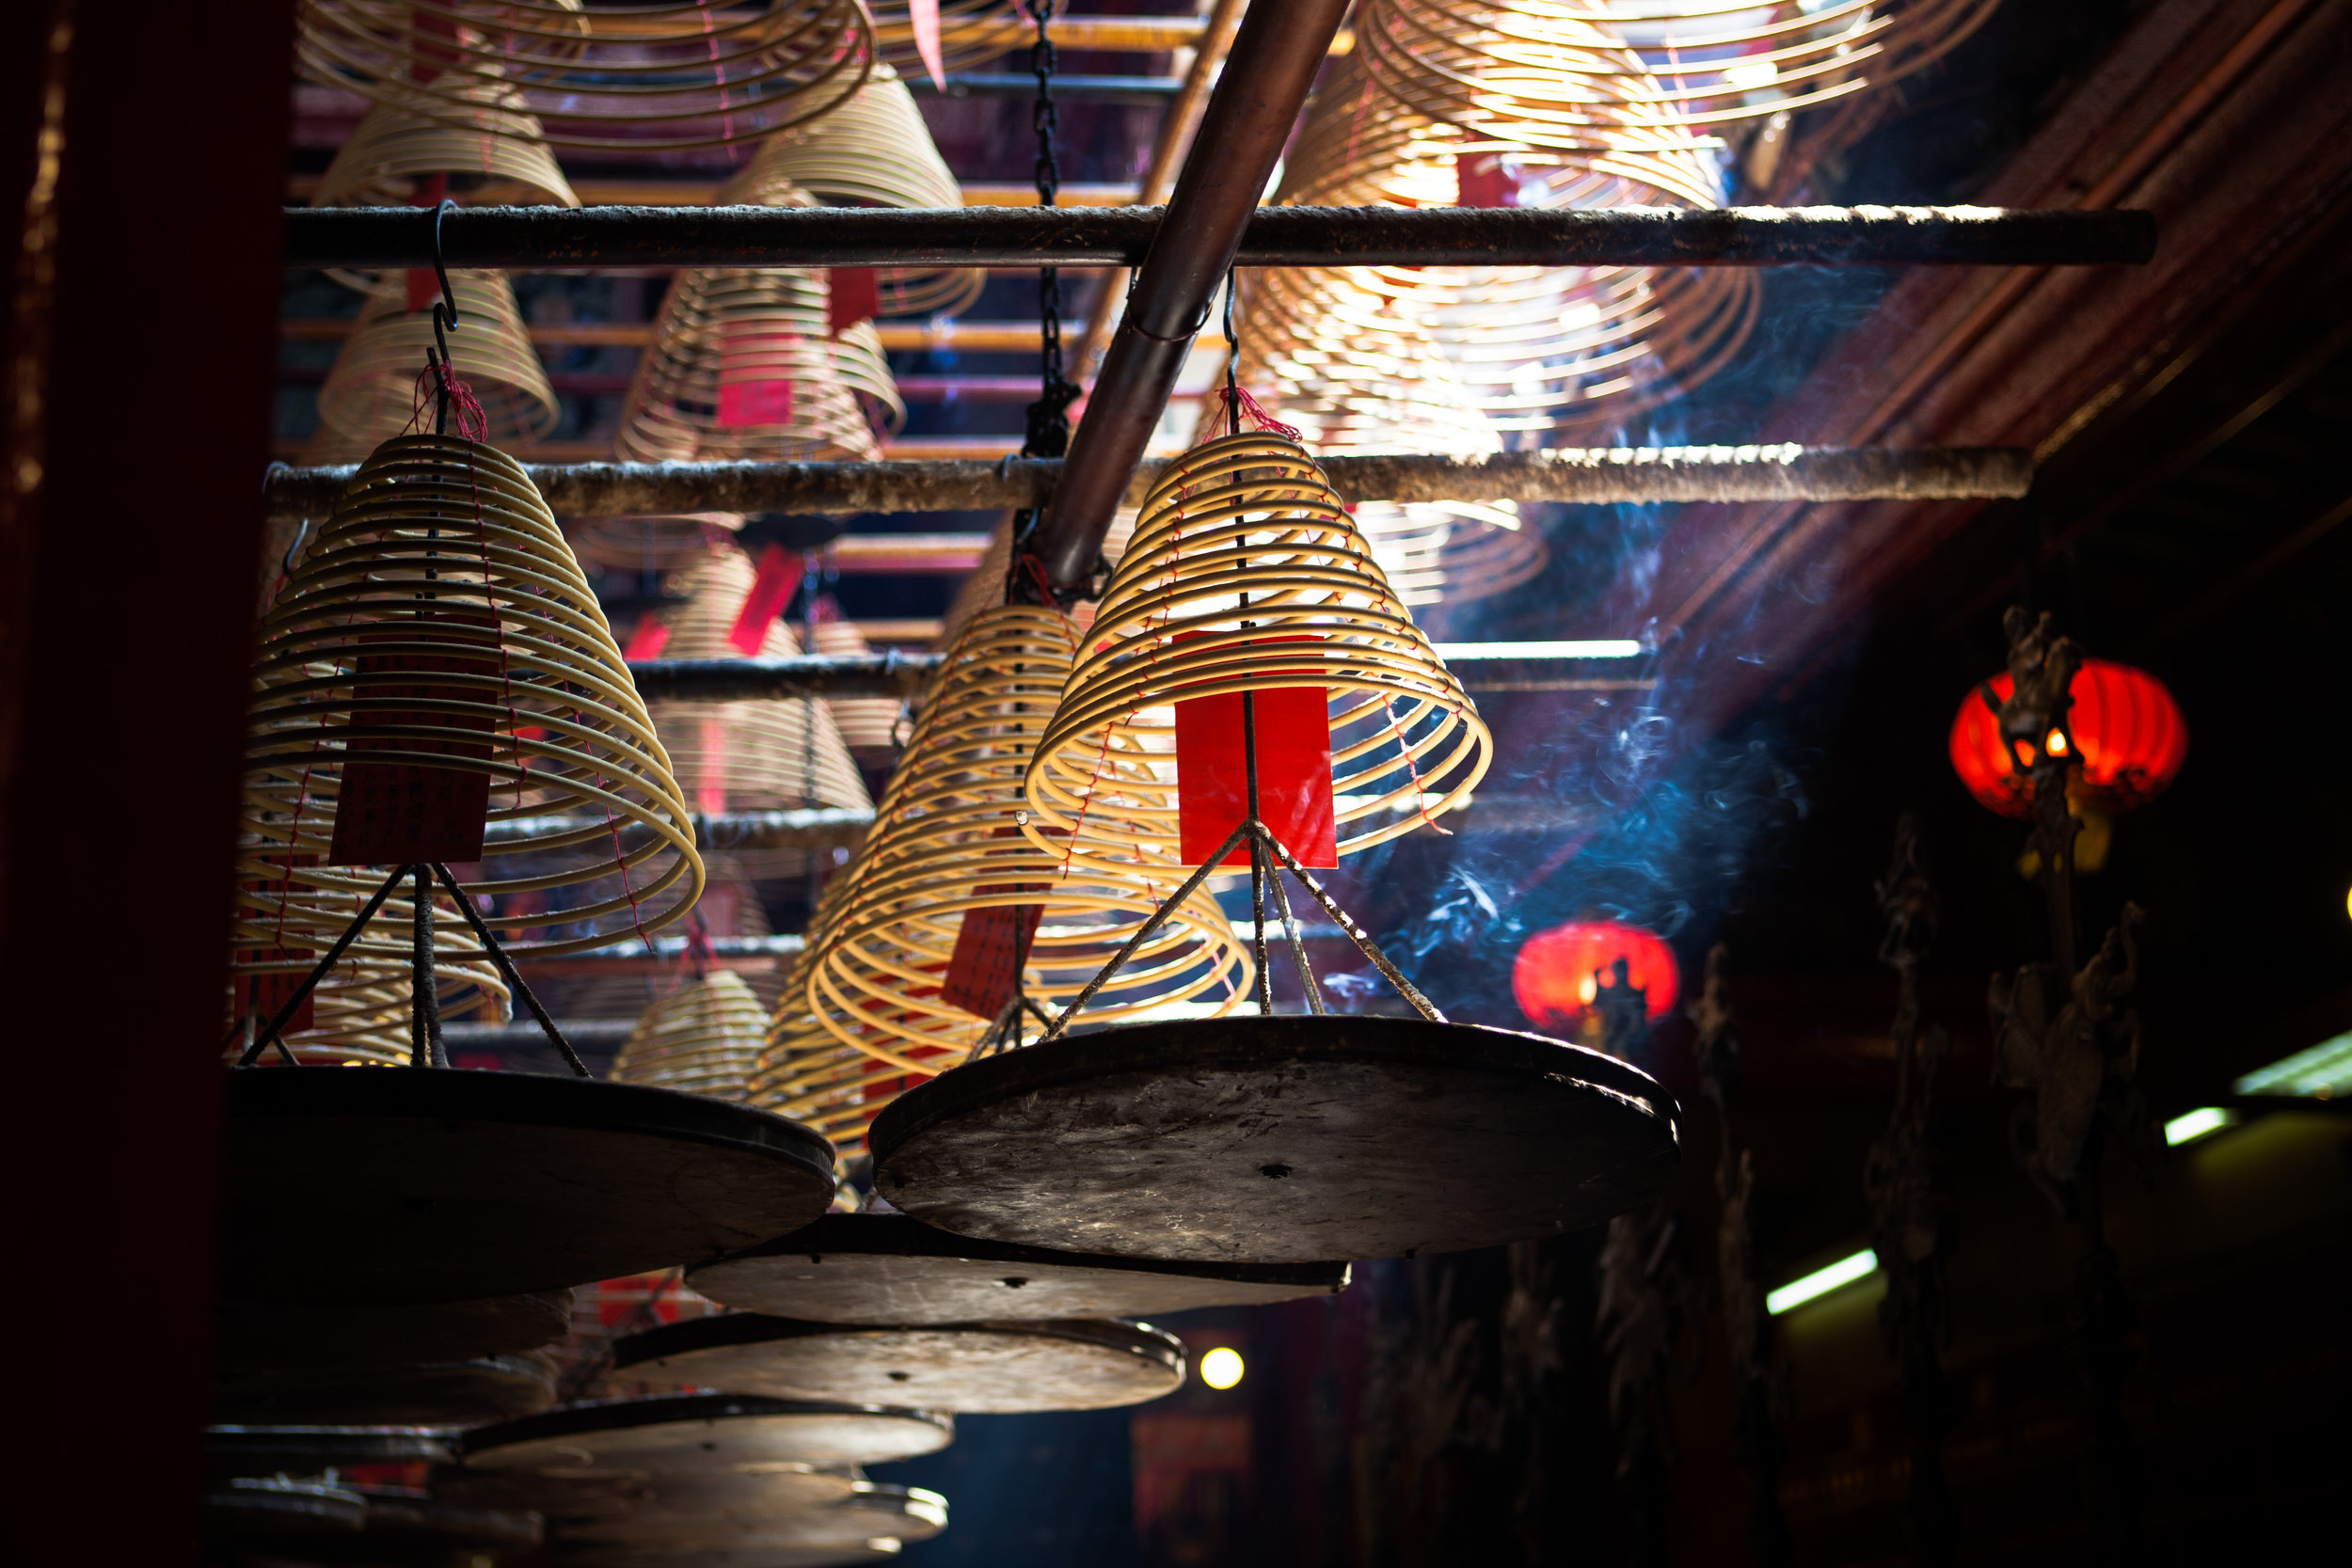 Incense coils suspended from a temple ceiling in Hong Kong. Pic by  Nicolas Holzey .